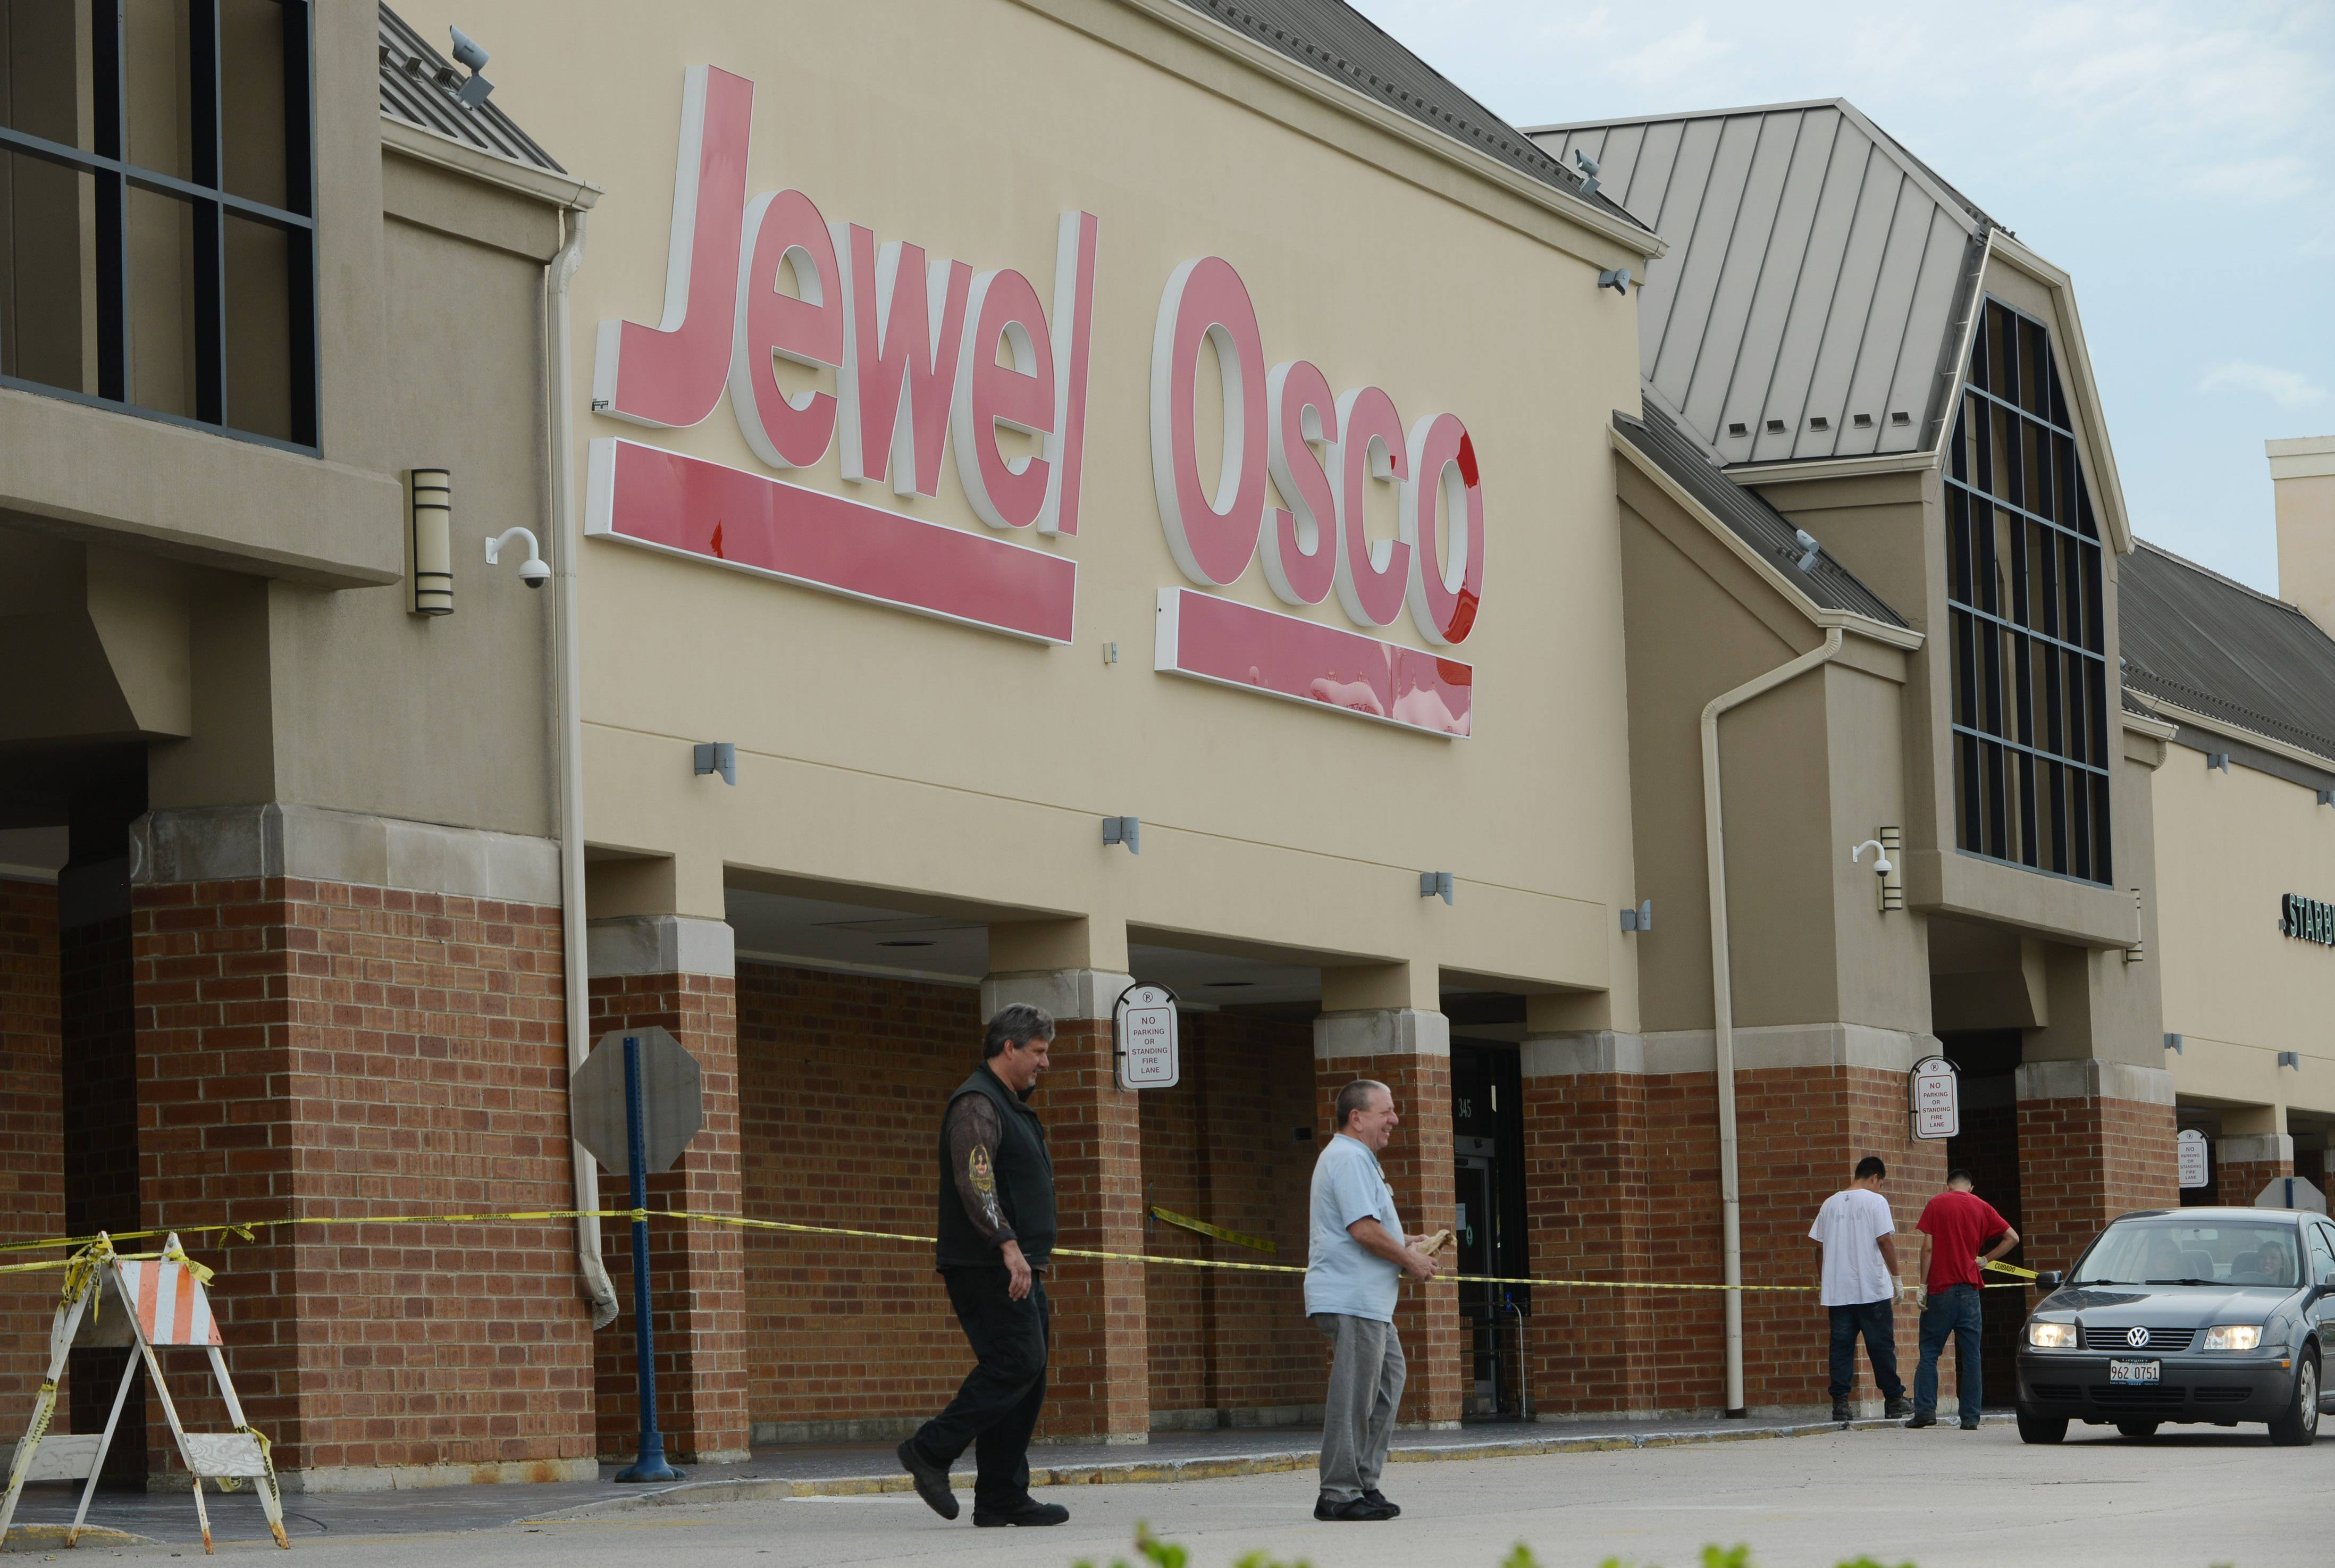 Jewel will open tonight at the former Dominick's store at Route 22 and Rand Road in Lake Zurich.